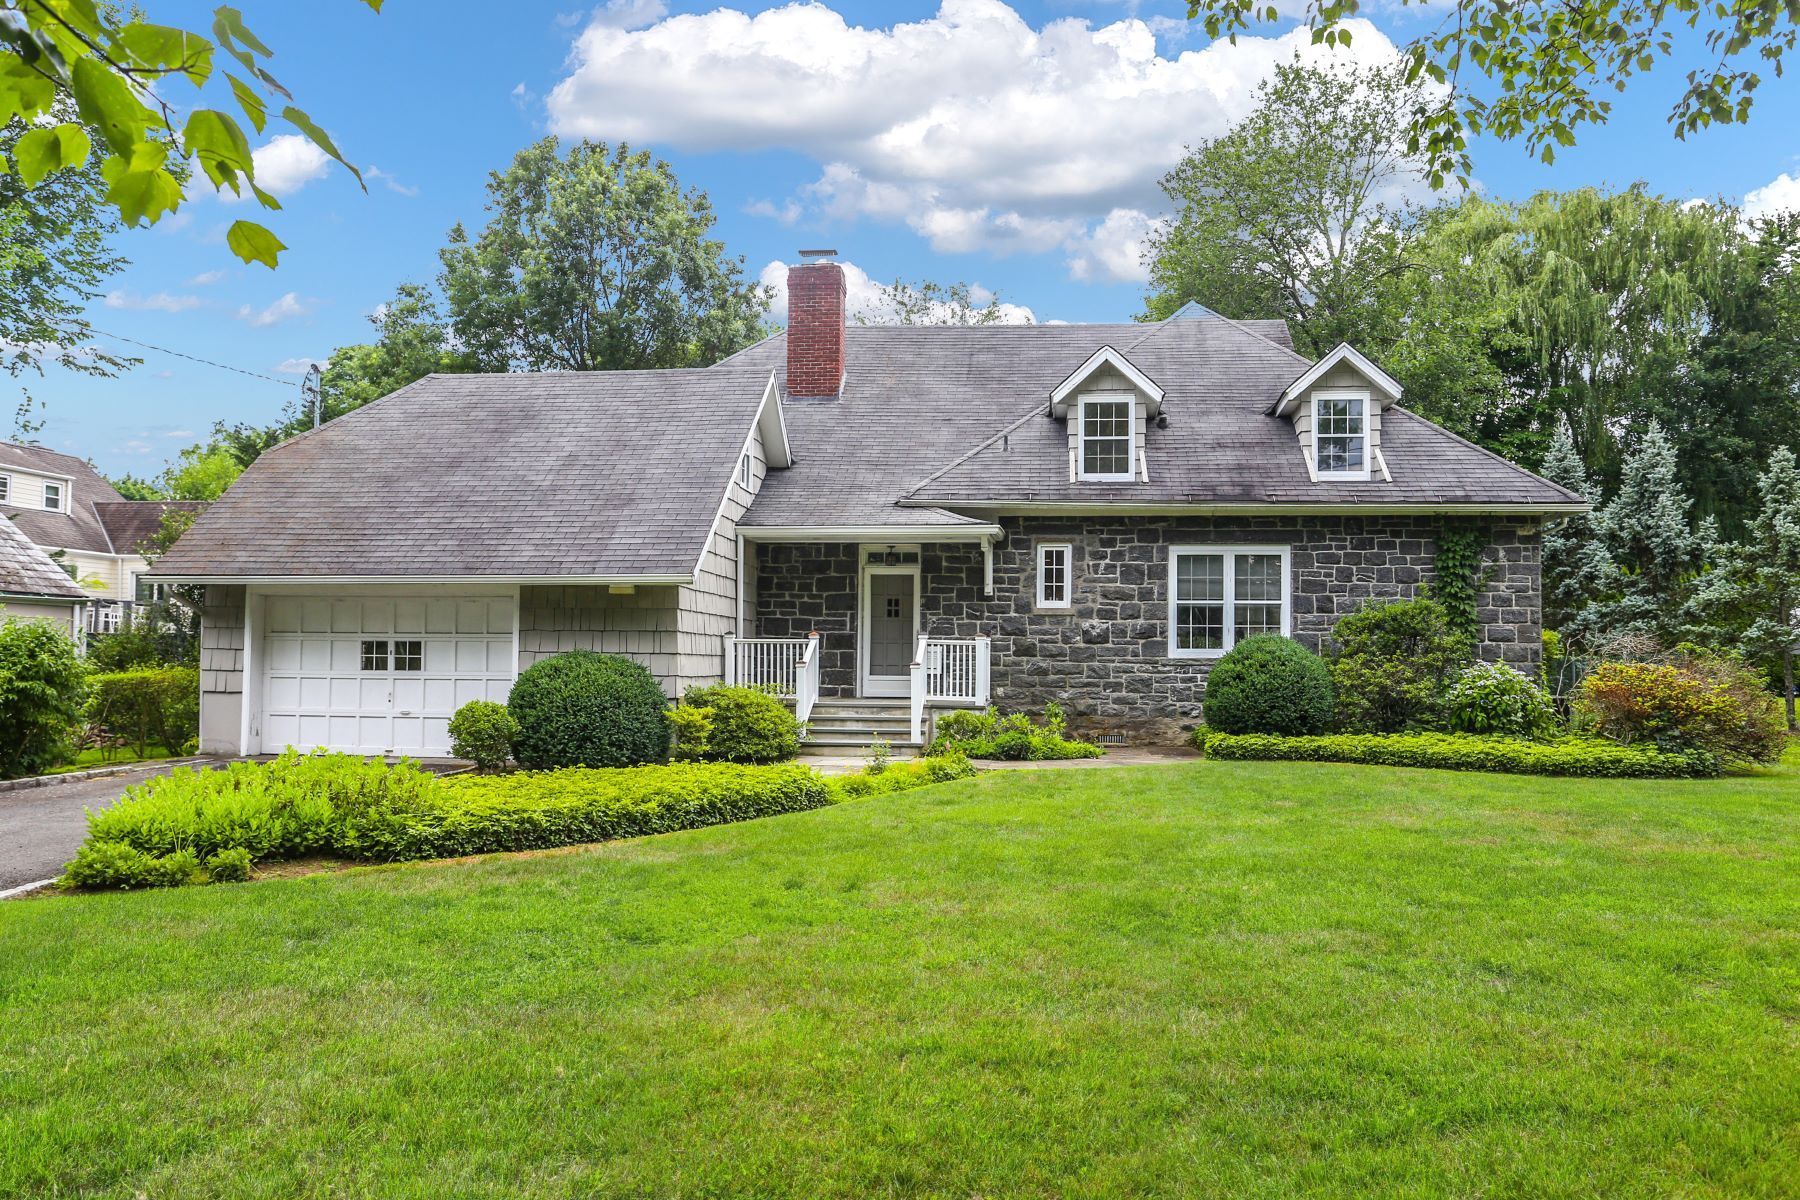 Single Family Homes for Active at 427 Rushmore Avenue 427 Rushmore Ave Mamaroneck, New York 10543 United States